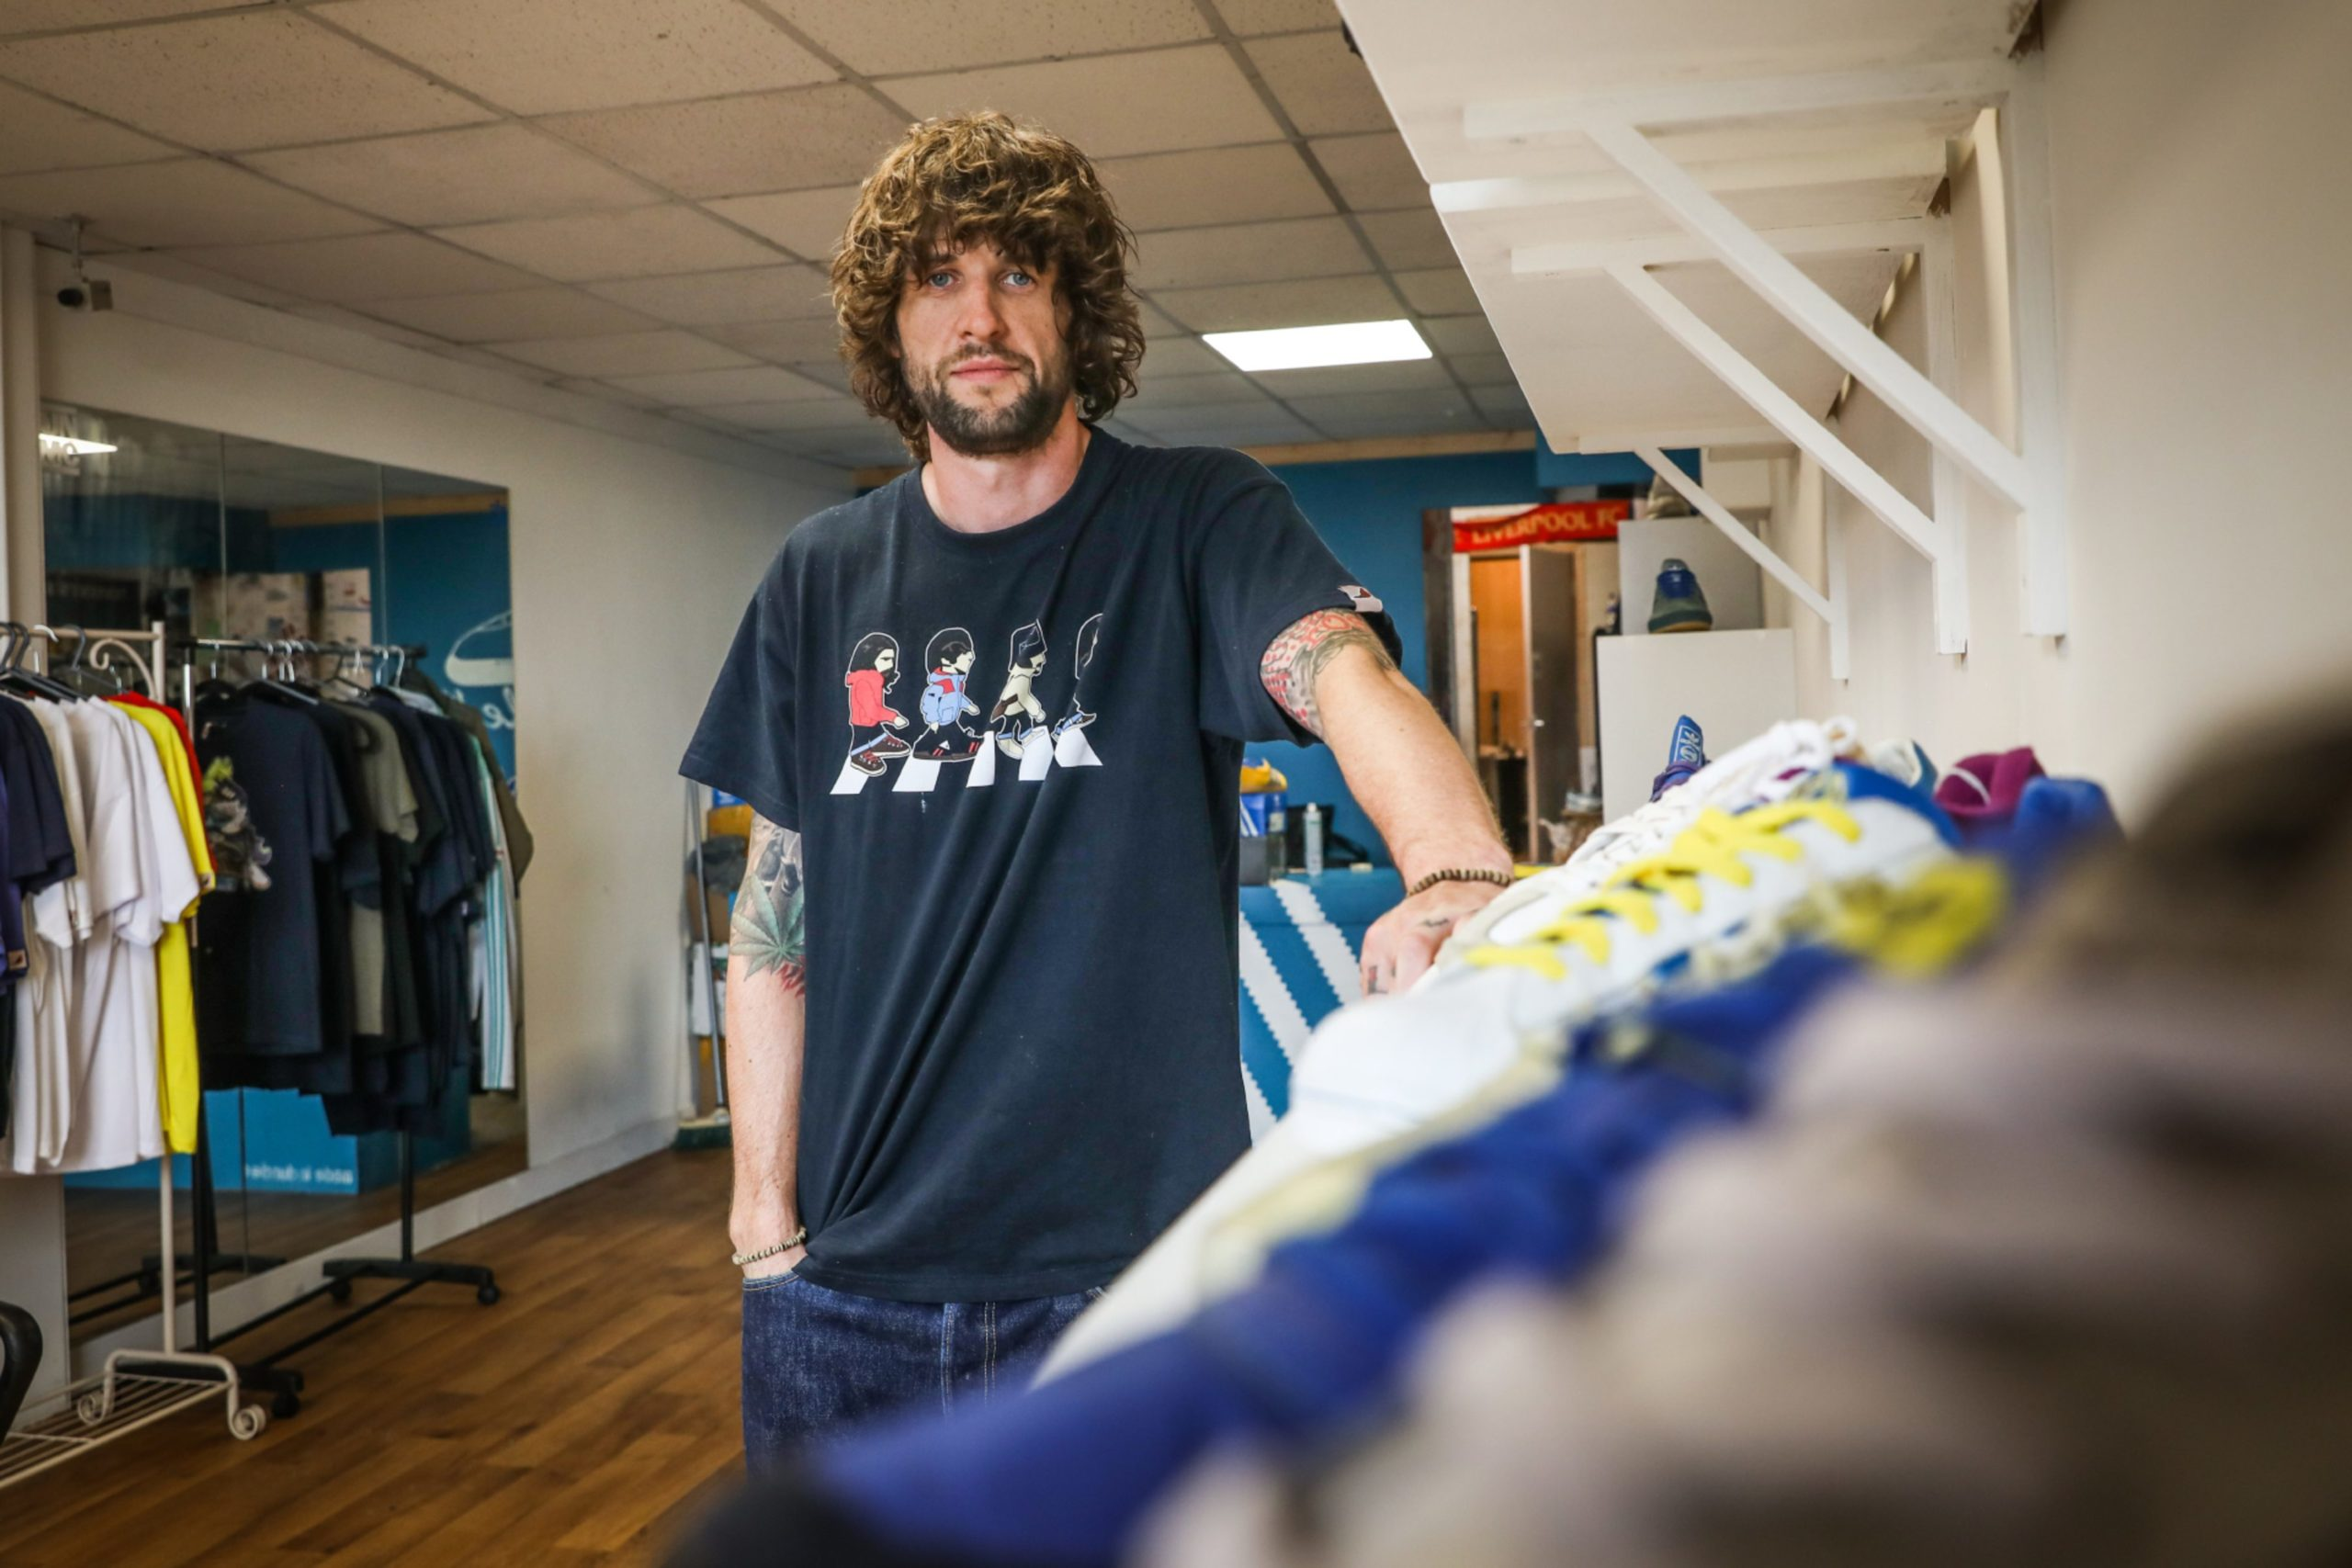 Kris Boyle, the owner of Dundee Sole.